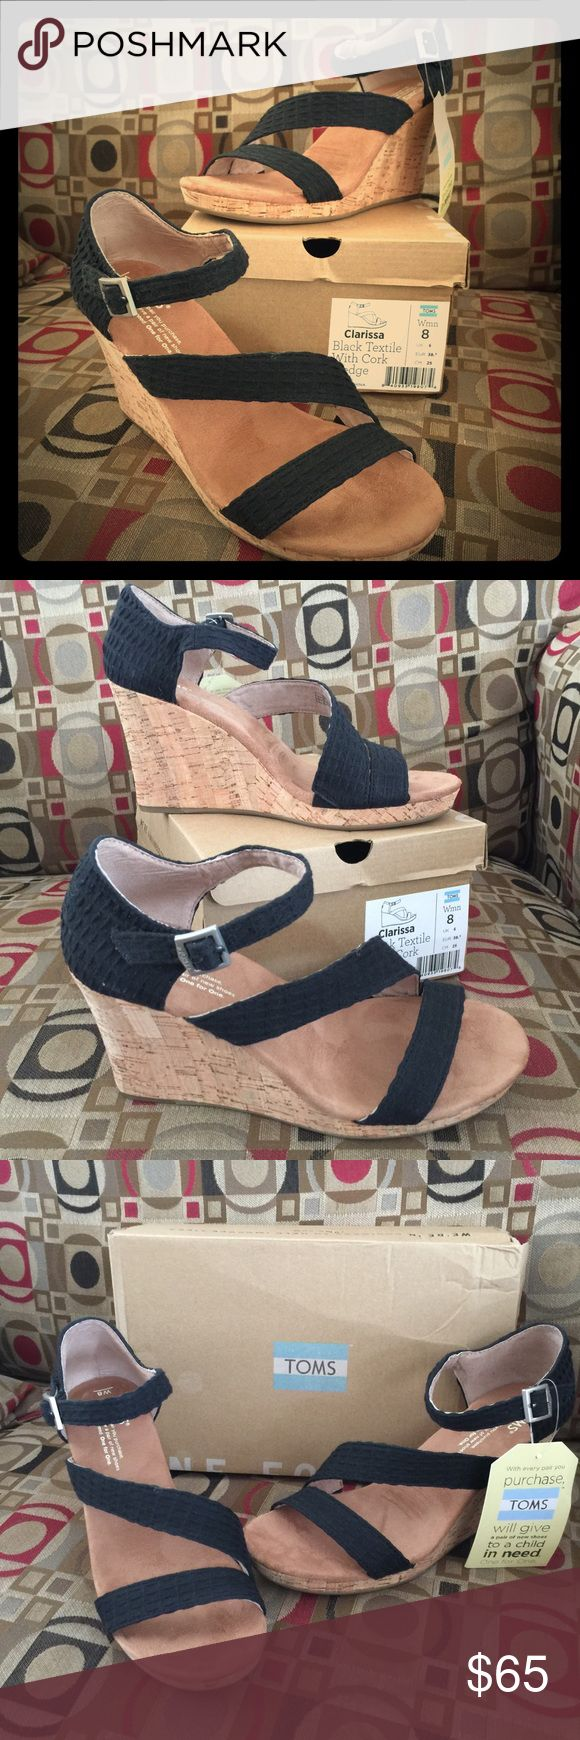 🍉NWT🍉 Toms Wedge Sandals Host Pick🍉New With Tags!!🍉 Toms Clarissa Black Textile with Cork Wedge. Price is firm. Toms Shoes Sandals